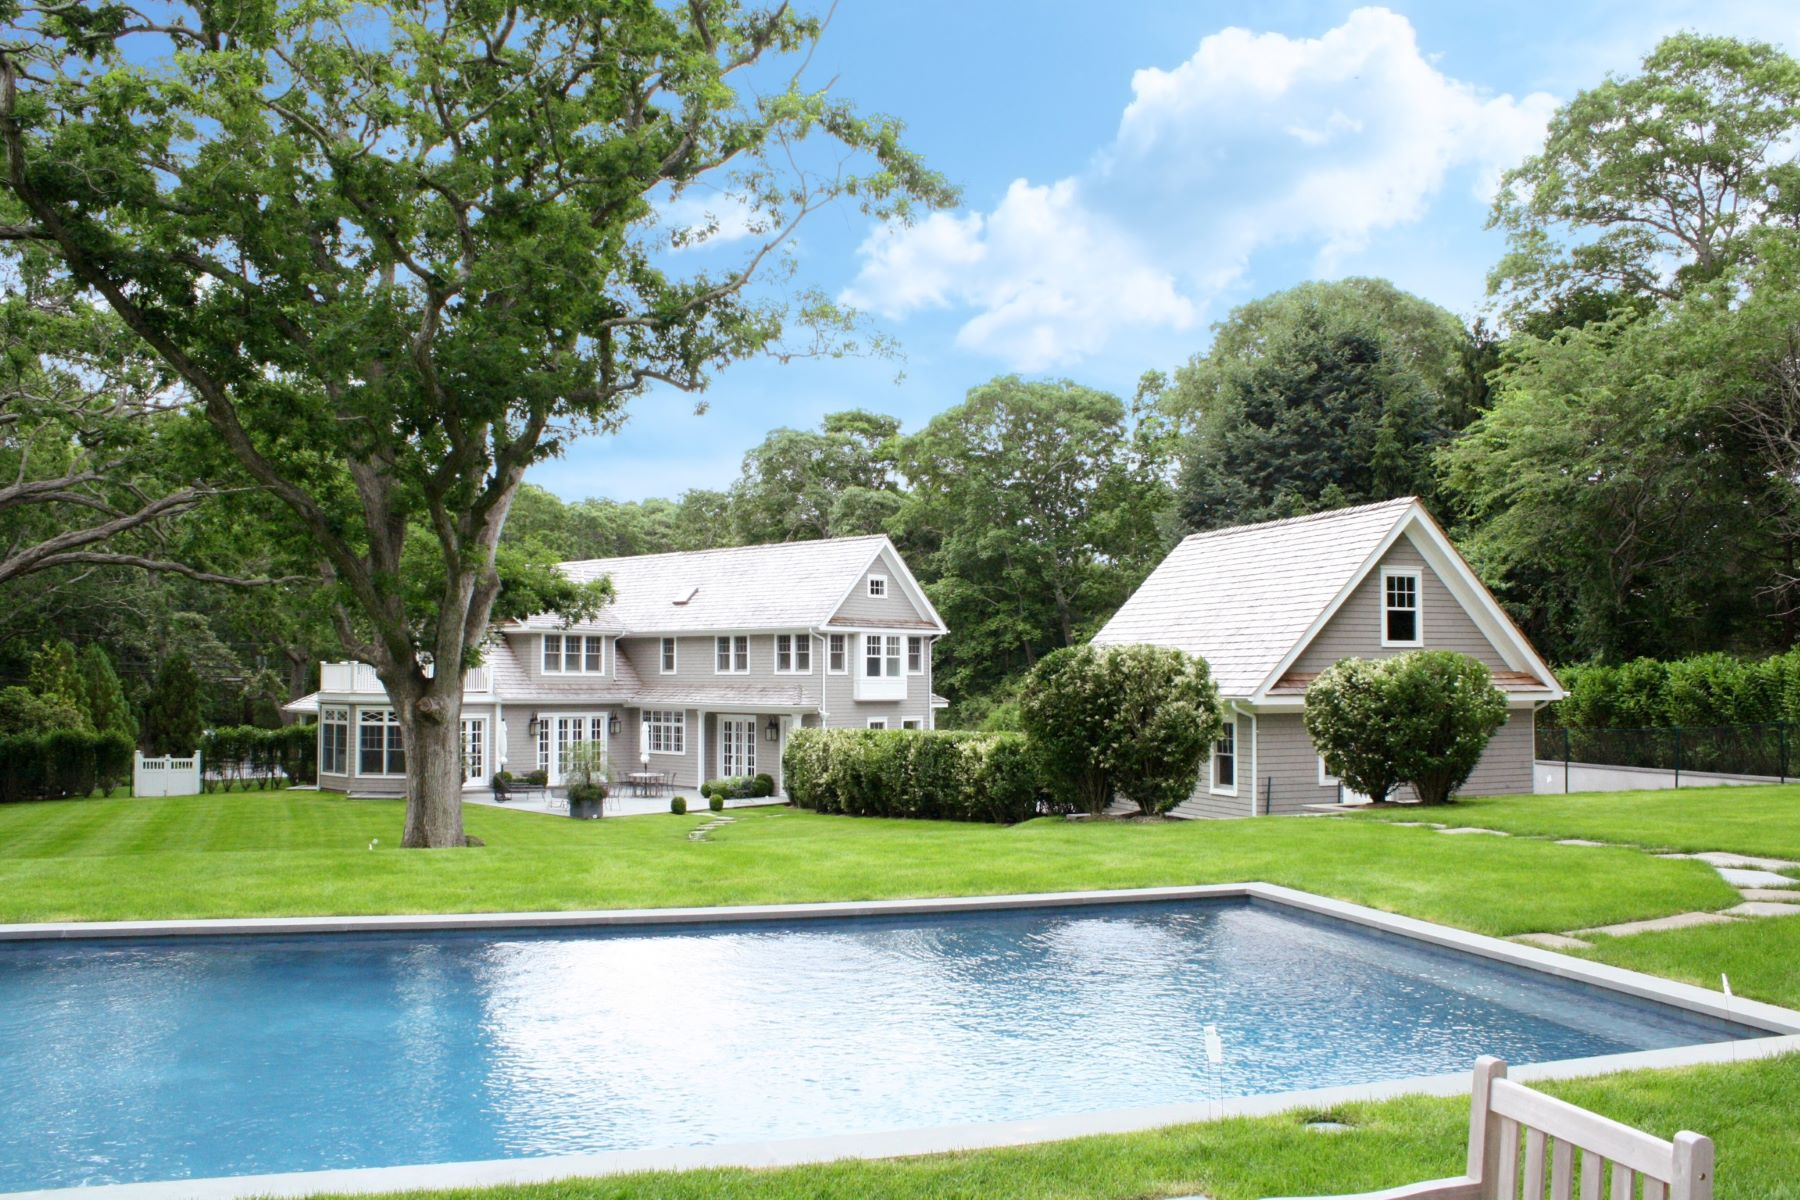 Single Family Homes for Sale at Dramatic Mini Estate 105 Cove Hollow Road East Hampton, New York 11937 United States